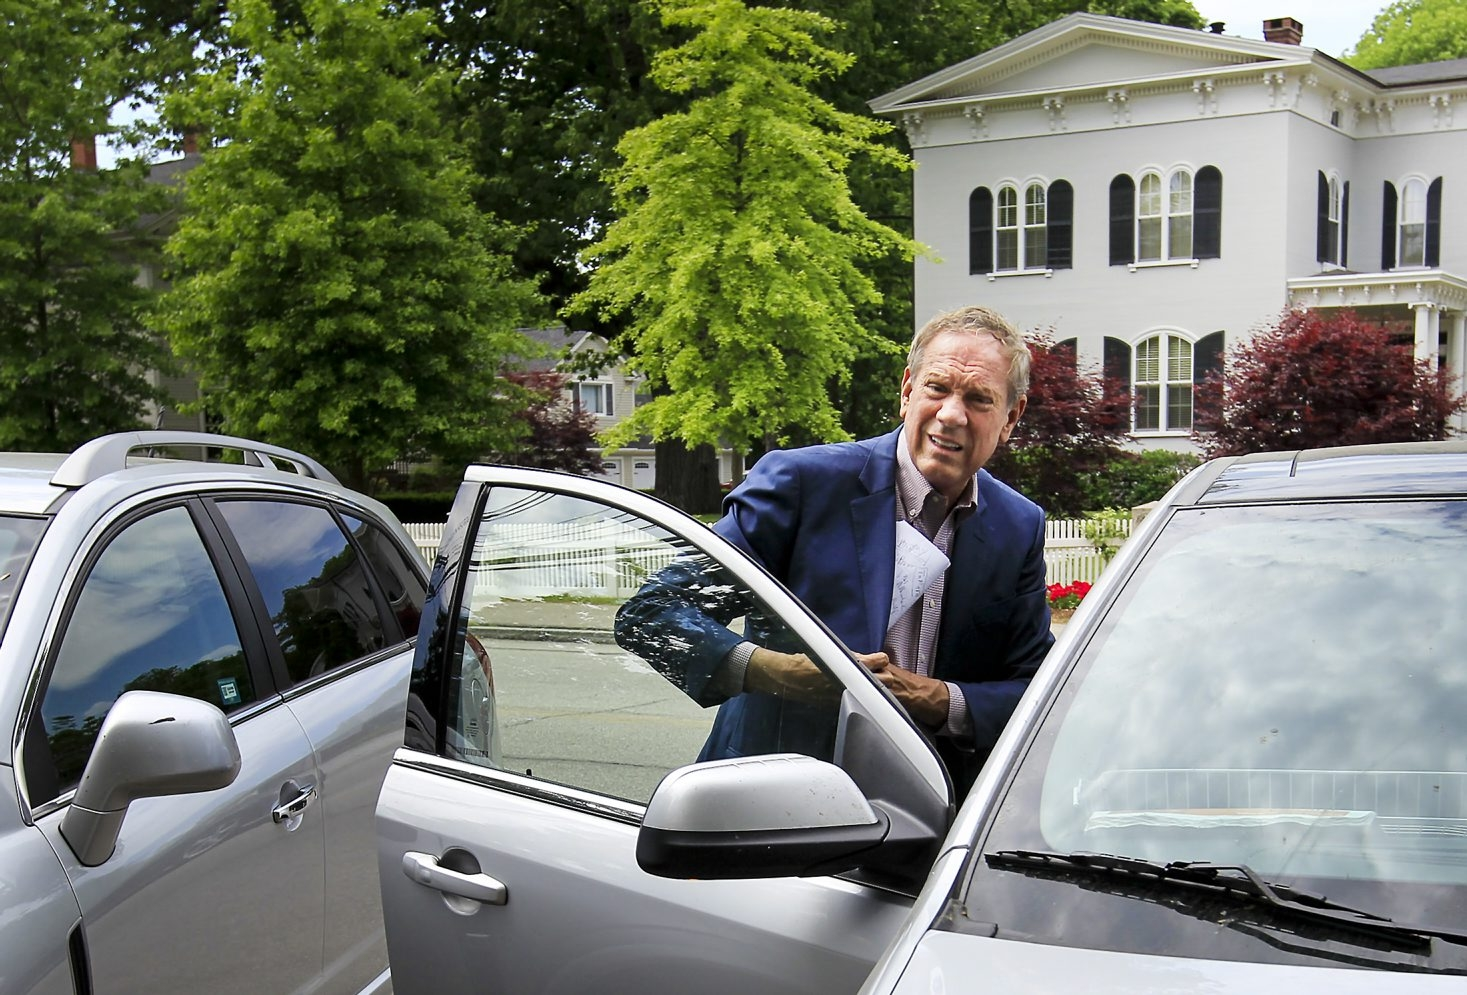 Former New York Gov. George Pataki arrives at the Exeter Inn.  Pataki will be announcing his presidential bid Thursday at the old Exeter town hall. (Cheryl Senter/Special to The News)